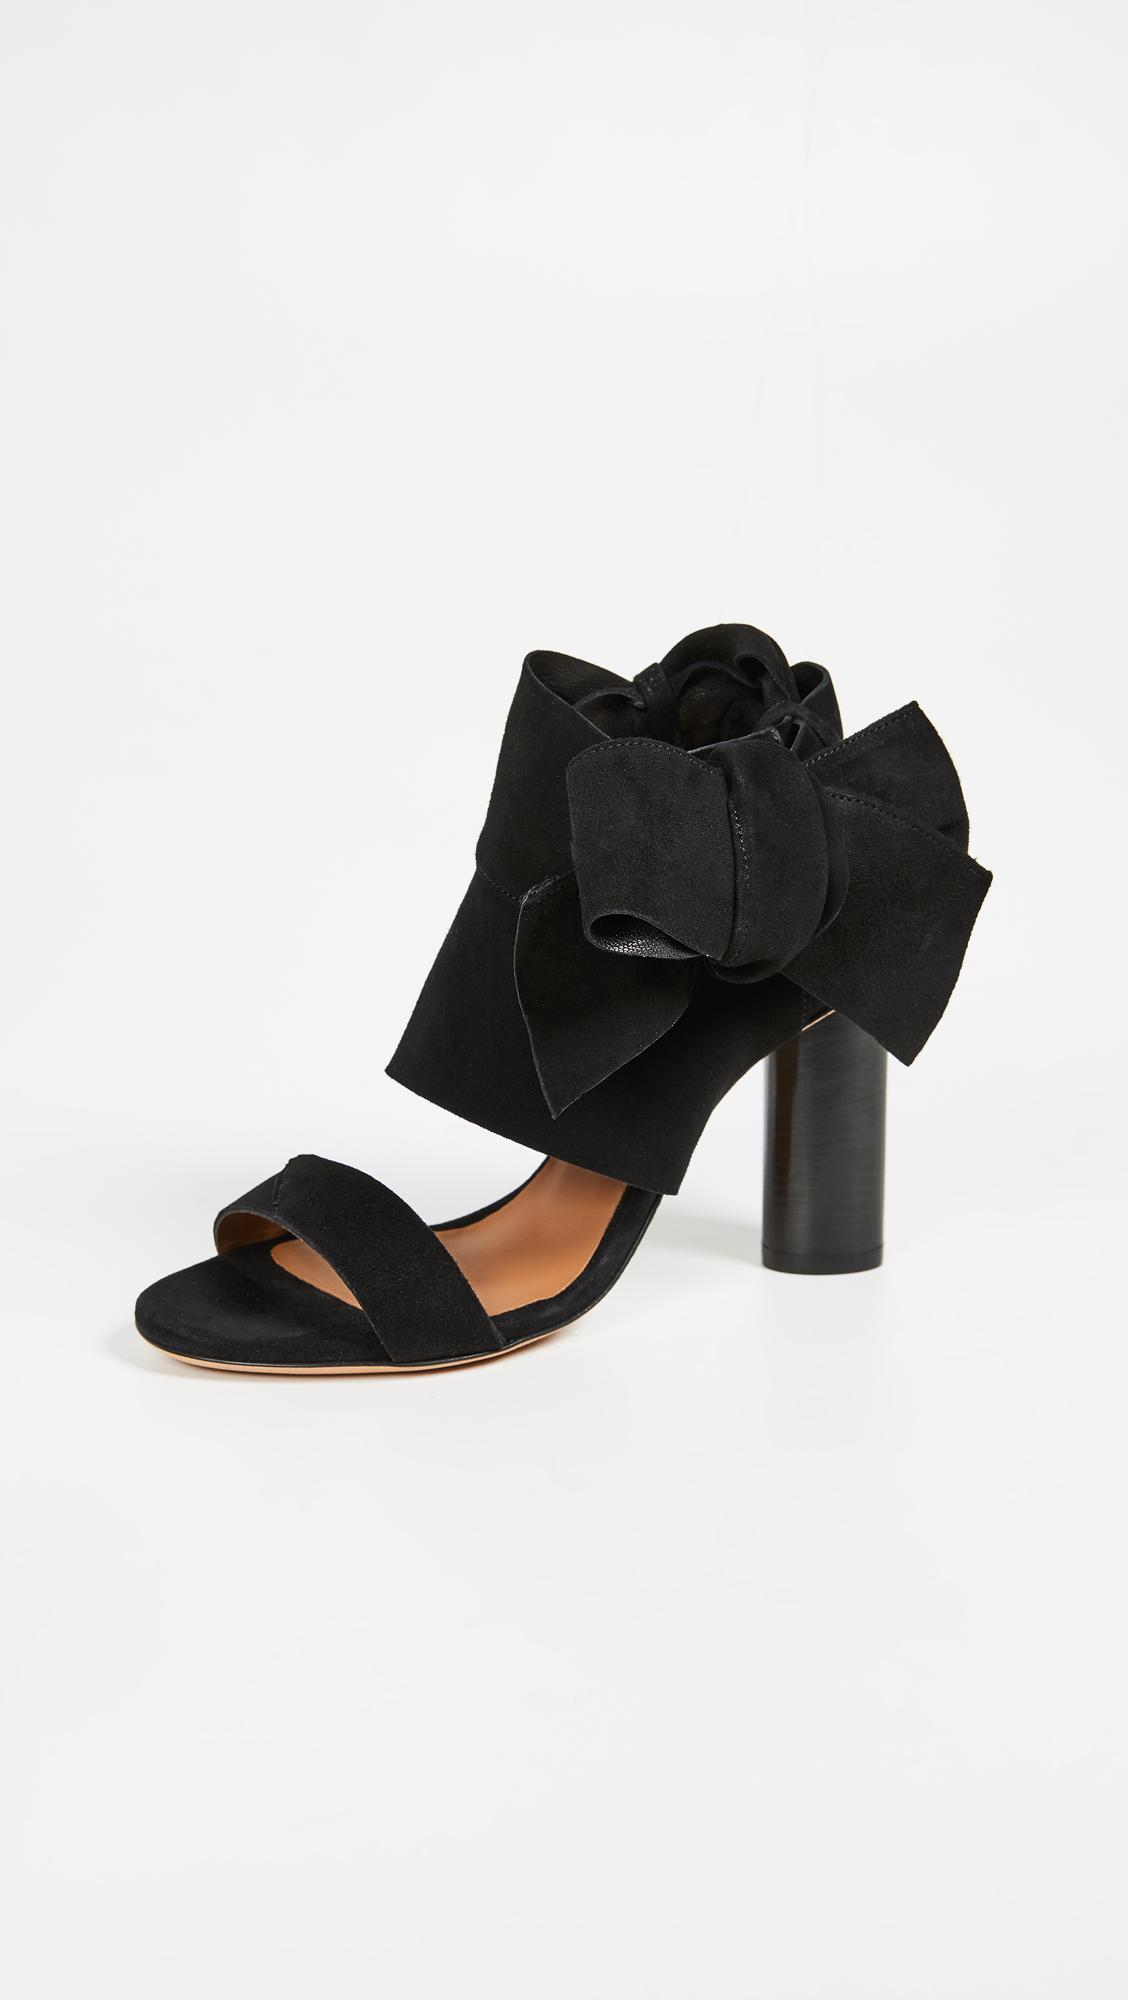 IRO Ditta Suede Sandals 0s1vNwG59V